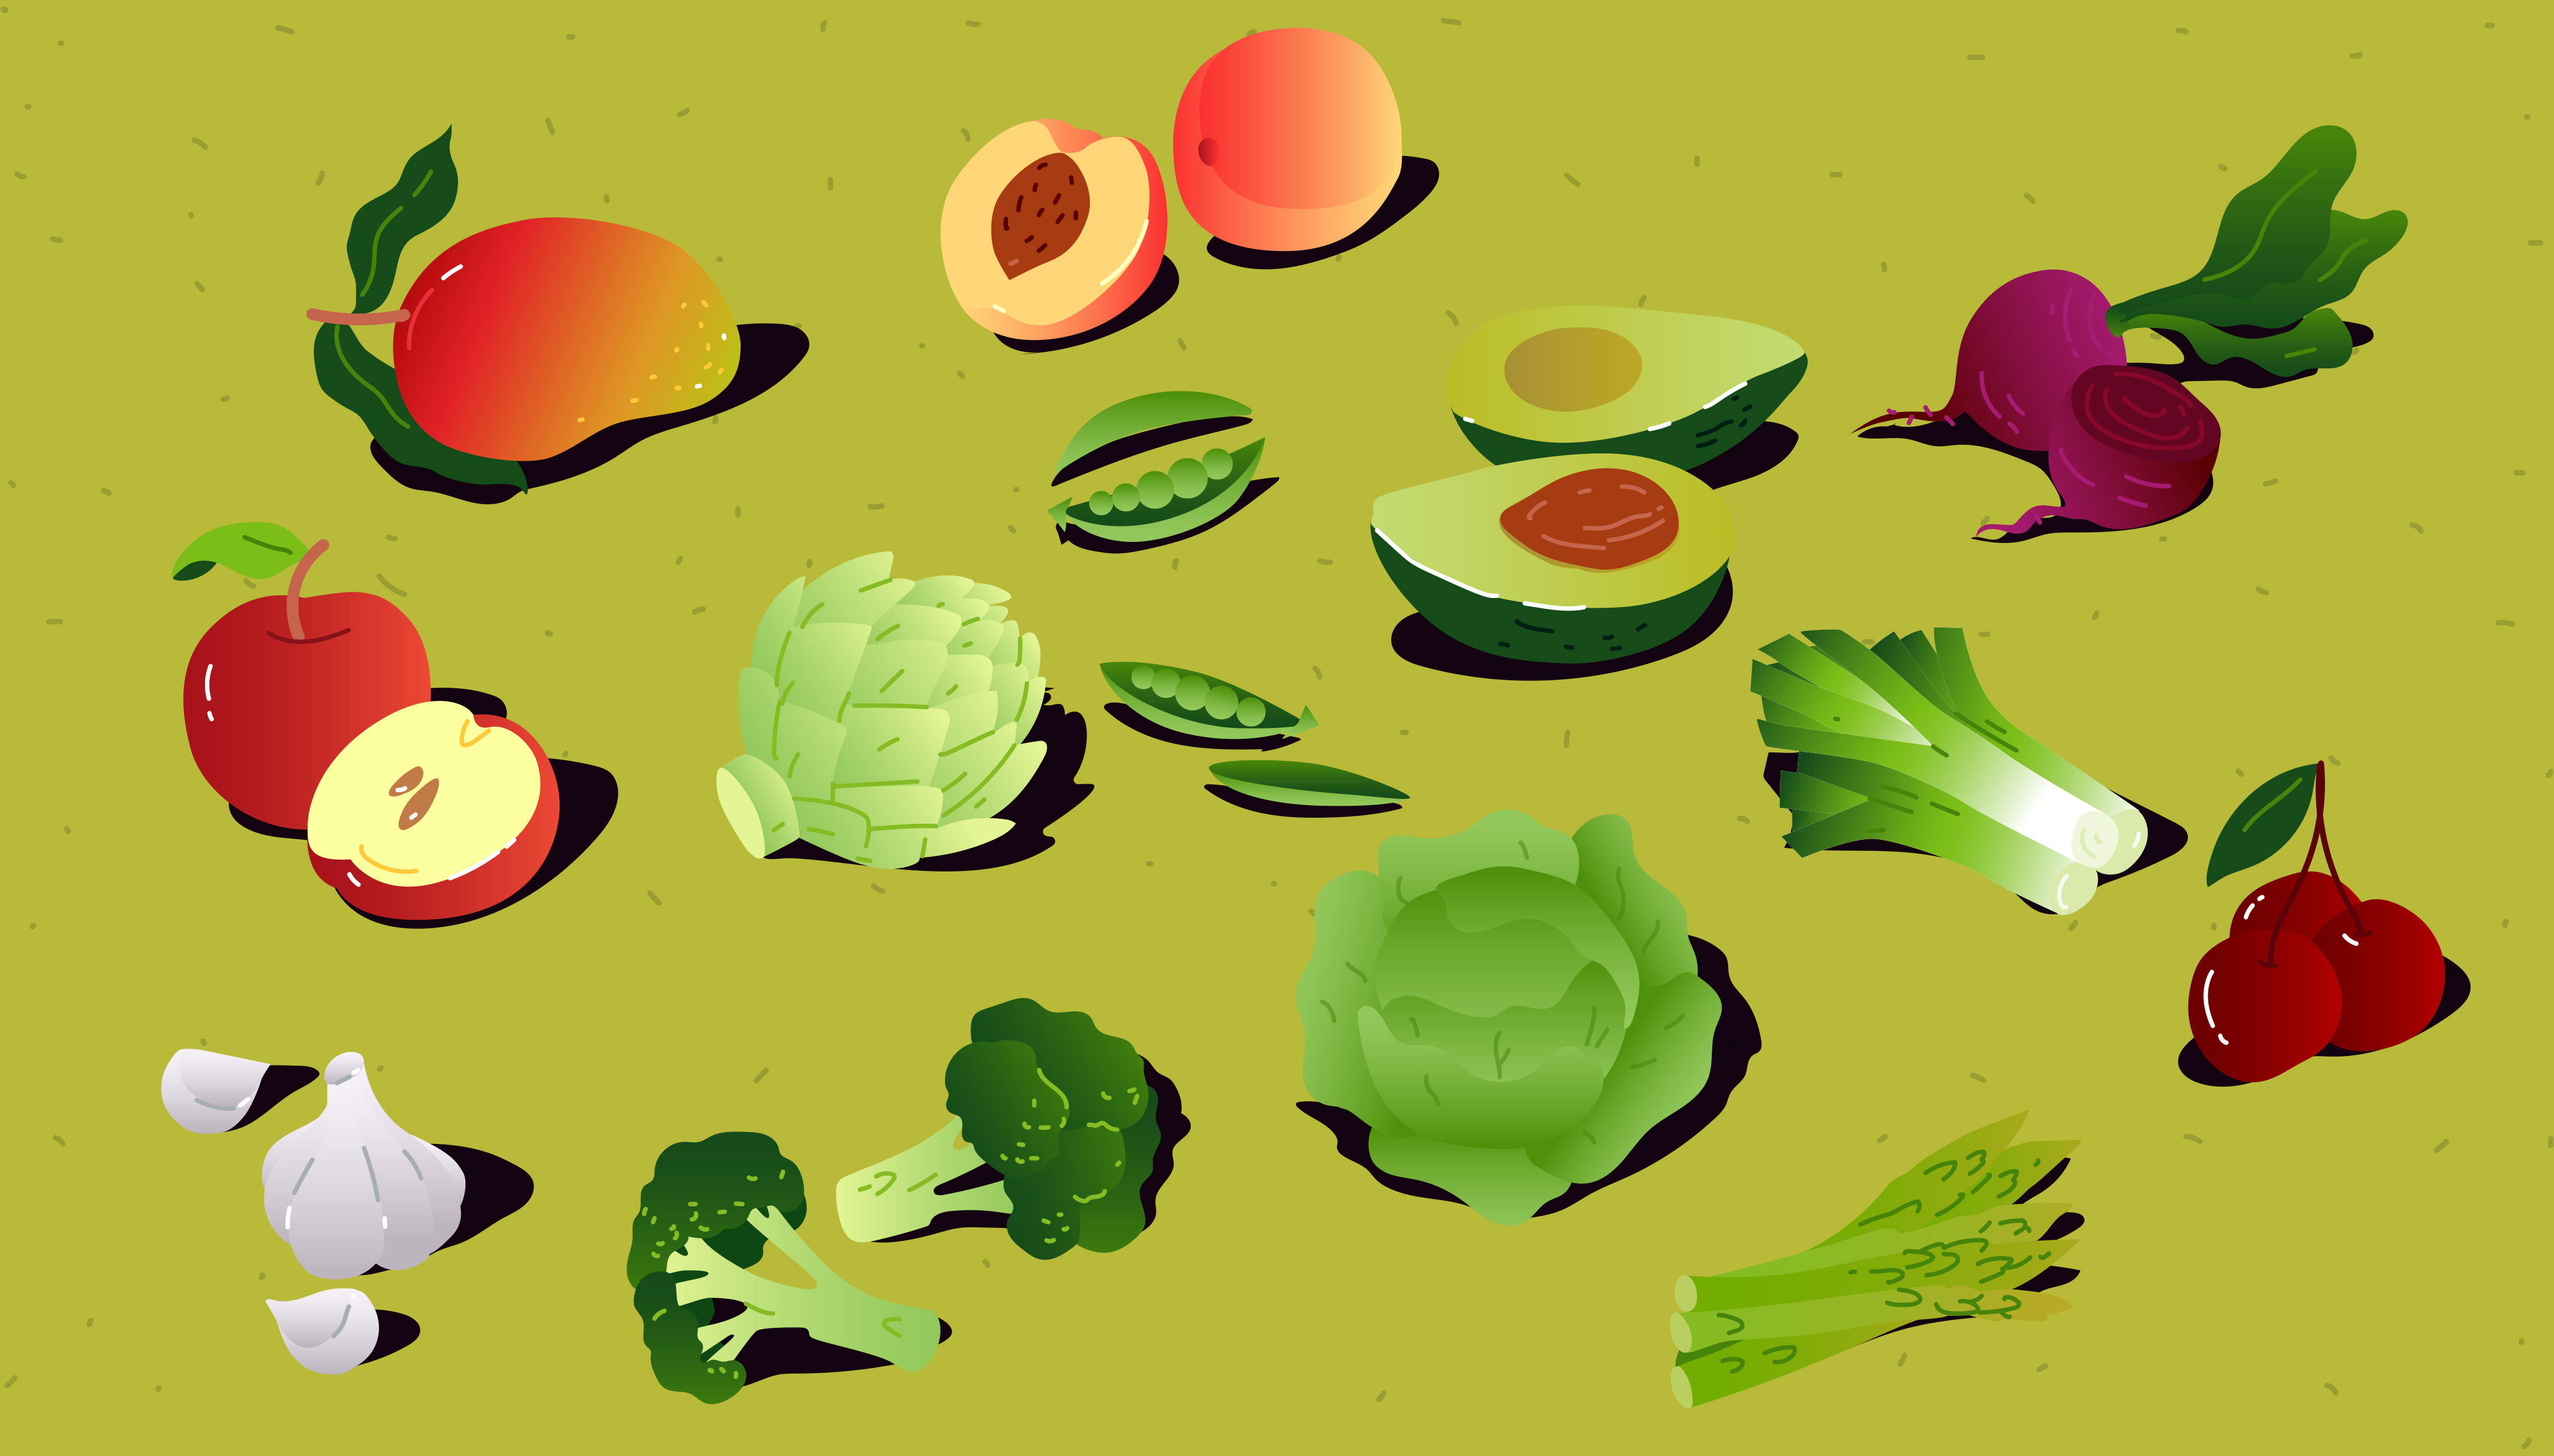 Beat The Bloat: dysbiosis, dietary fibre and FODMAPs